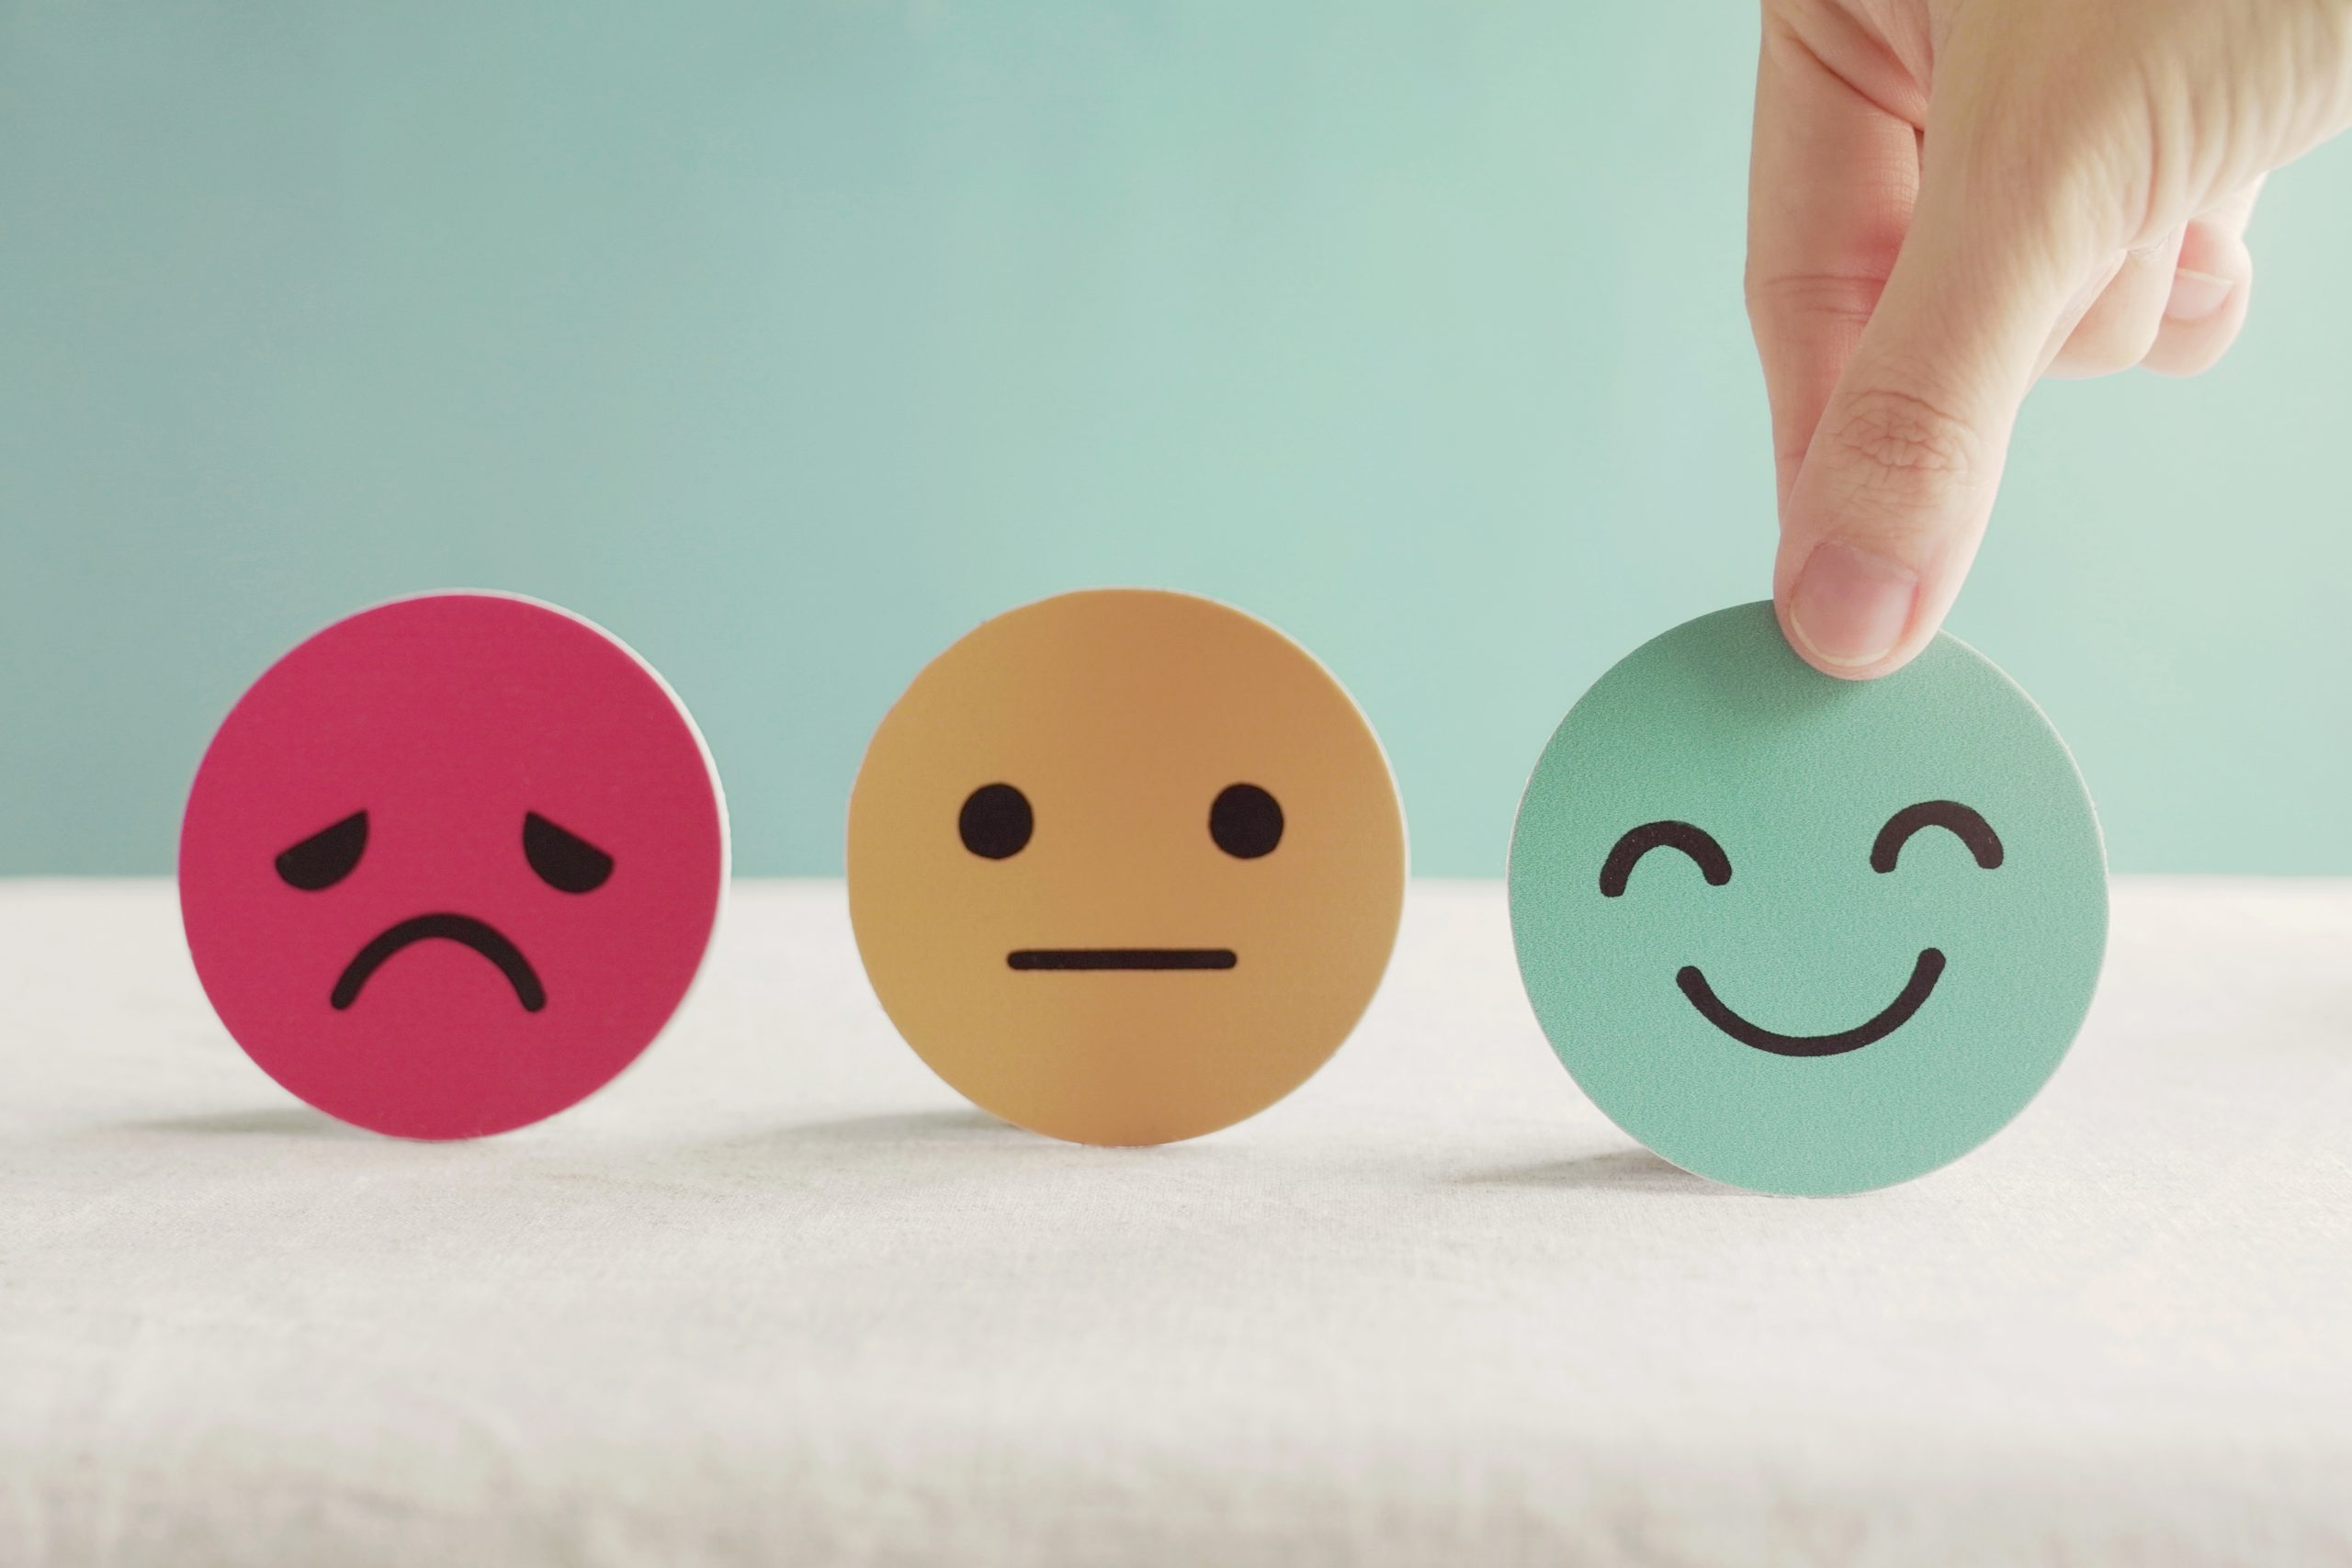 Person pointing towards three emojis, one frowning, one with a blank expression and one smiling